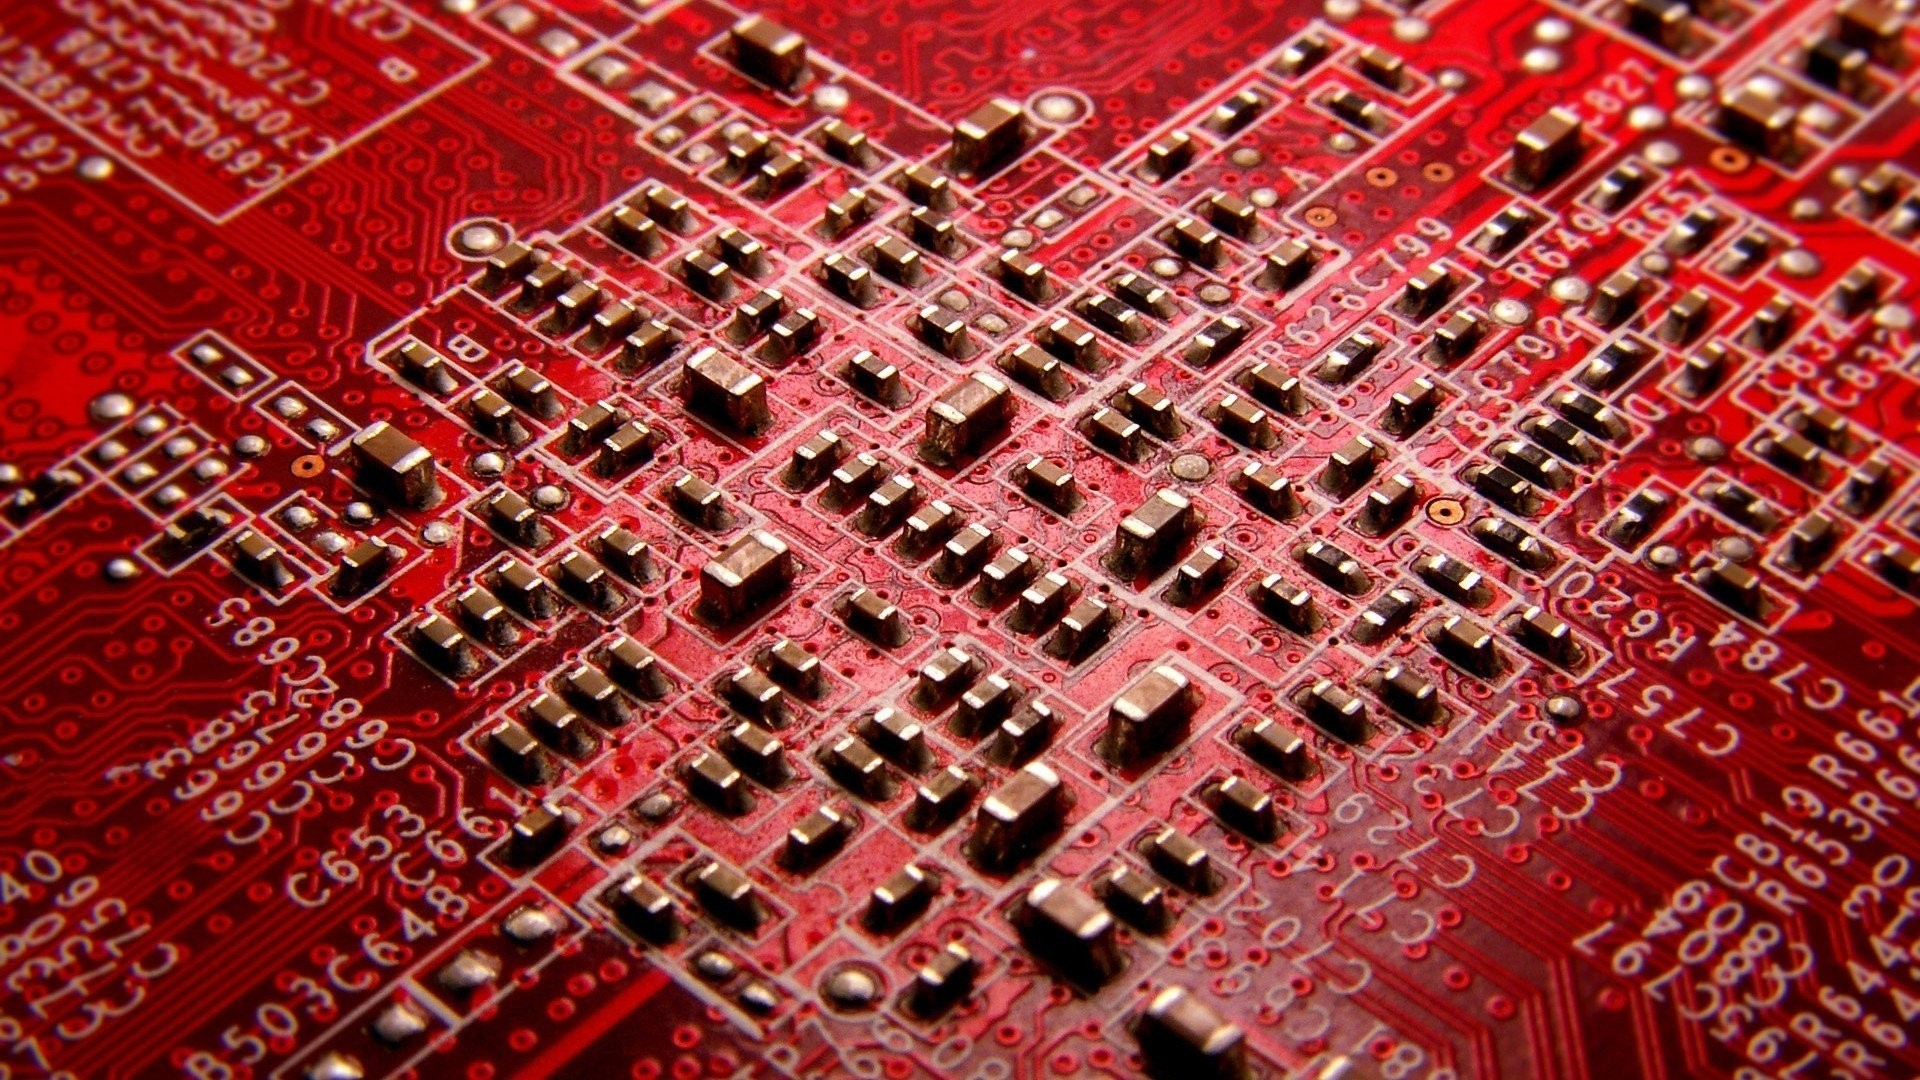 Circuit Board Wallpaper 67 Images By Coldbroken On Deviantart 2560x1600 Electronic